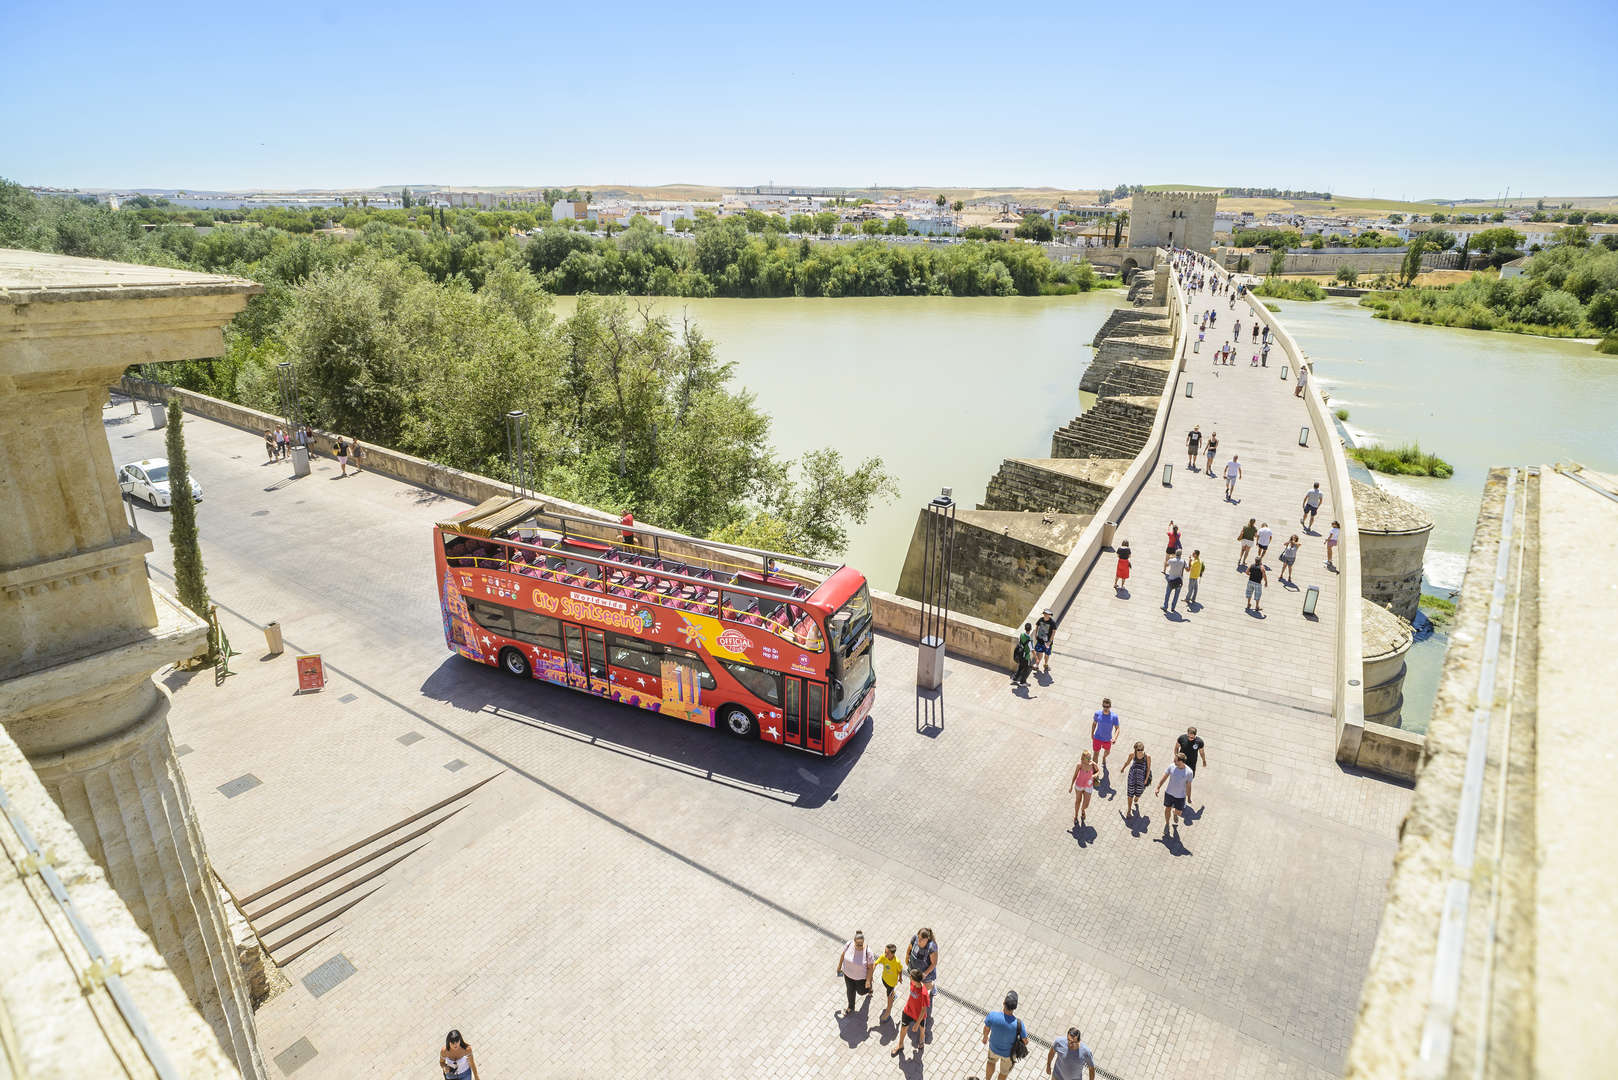 BUS TURÍSTICO CÓRDOBA (24H + 2 WALKING TOURS)<br /><strong>Ticket 24h  <strong class='extra_info_articulo'>- desde 19.99 €  </strong></strong>